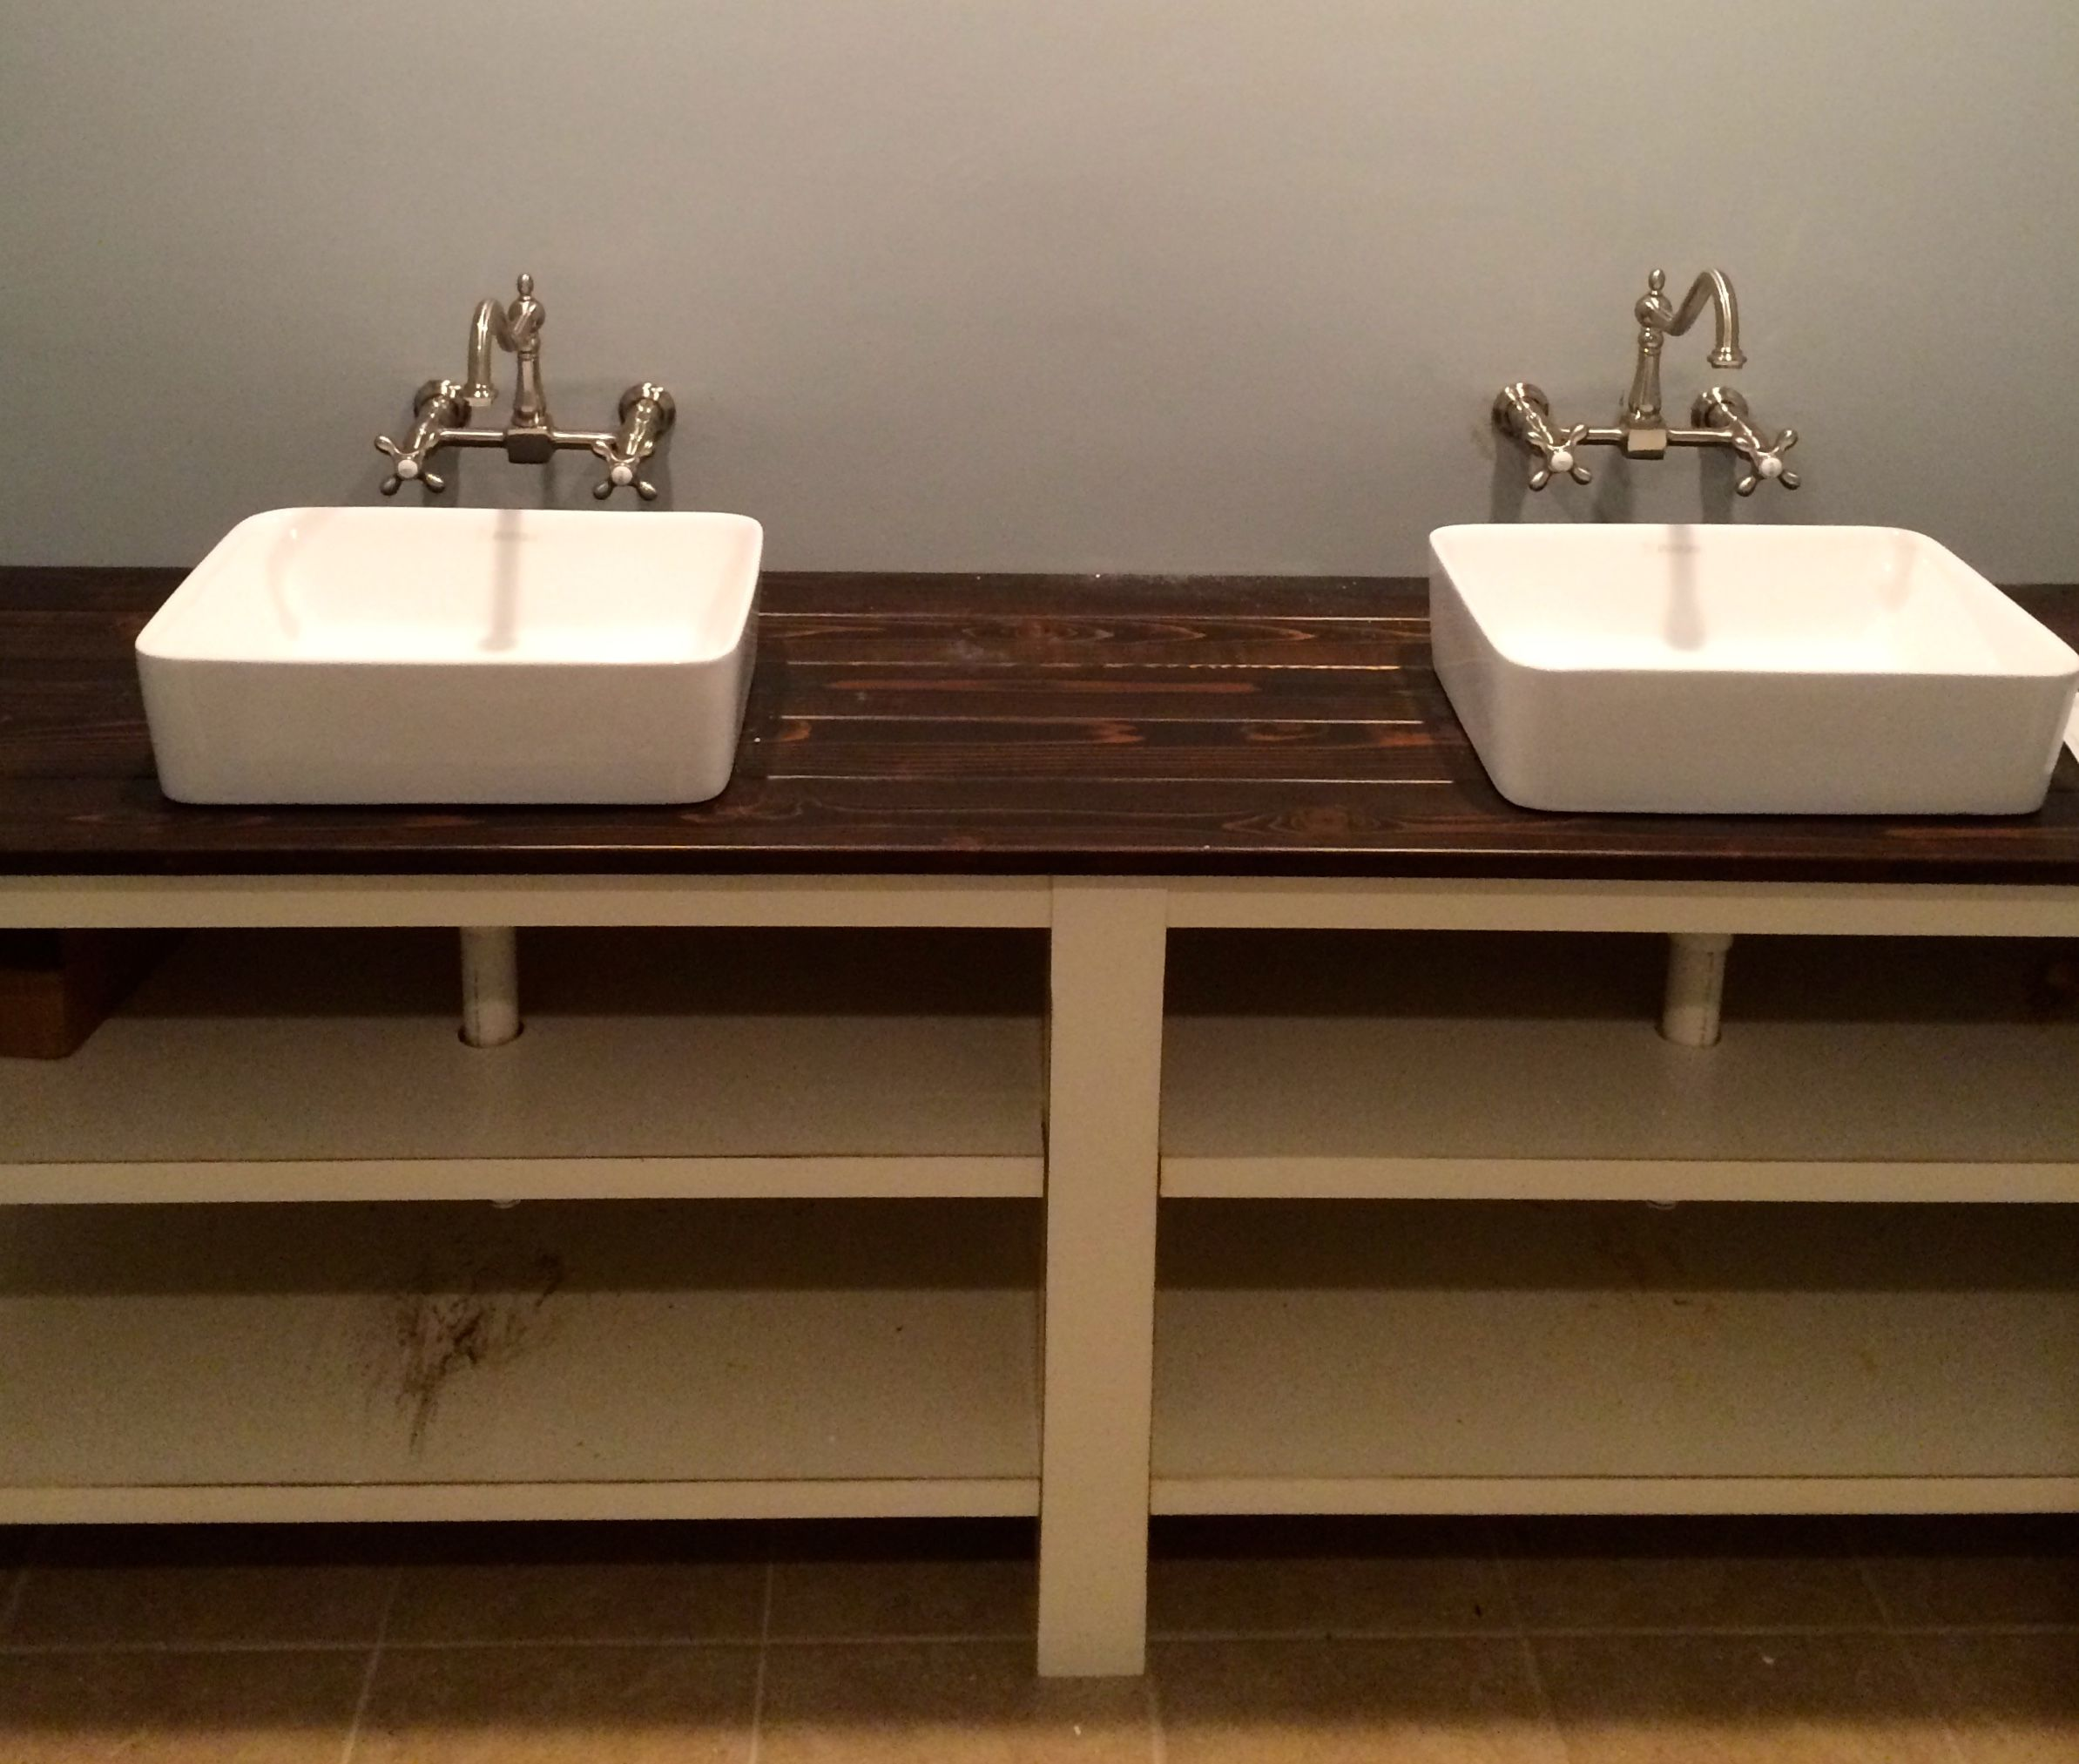 A bathroom vanity made out of a stained cedar plank countertop and open shelving underneath